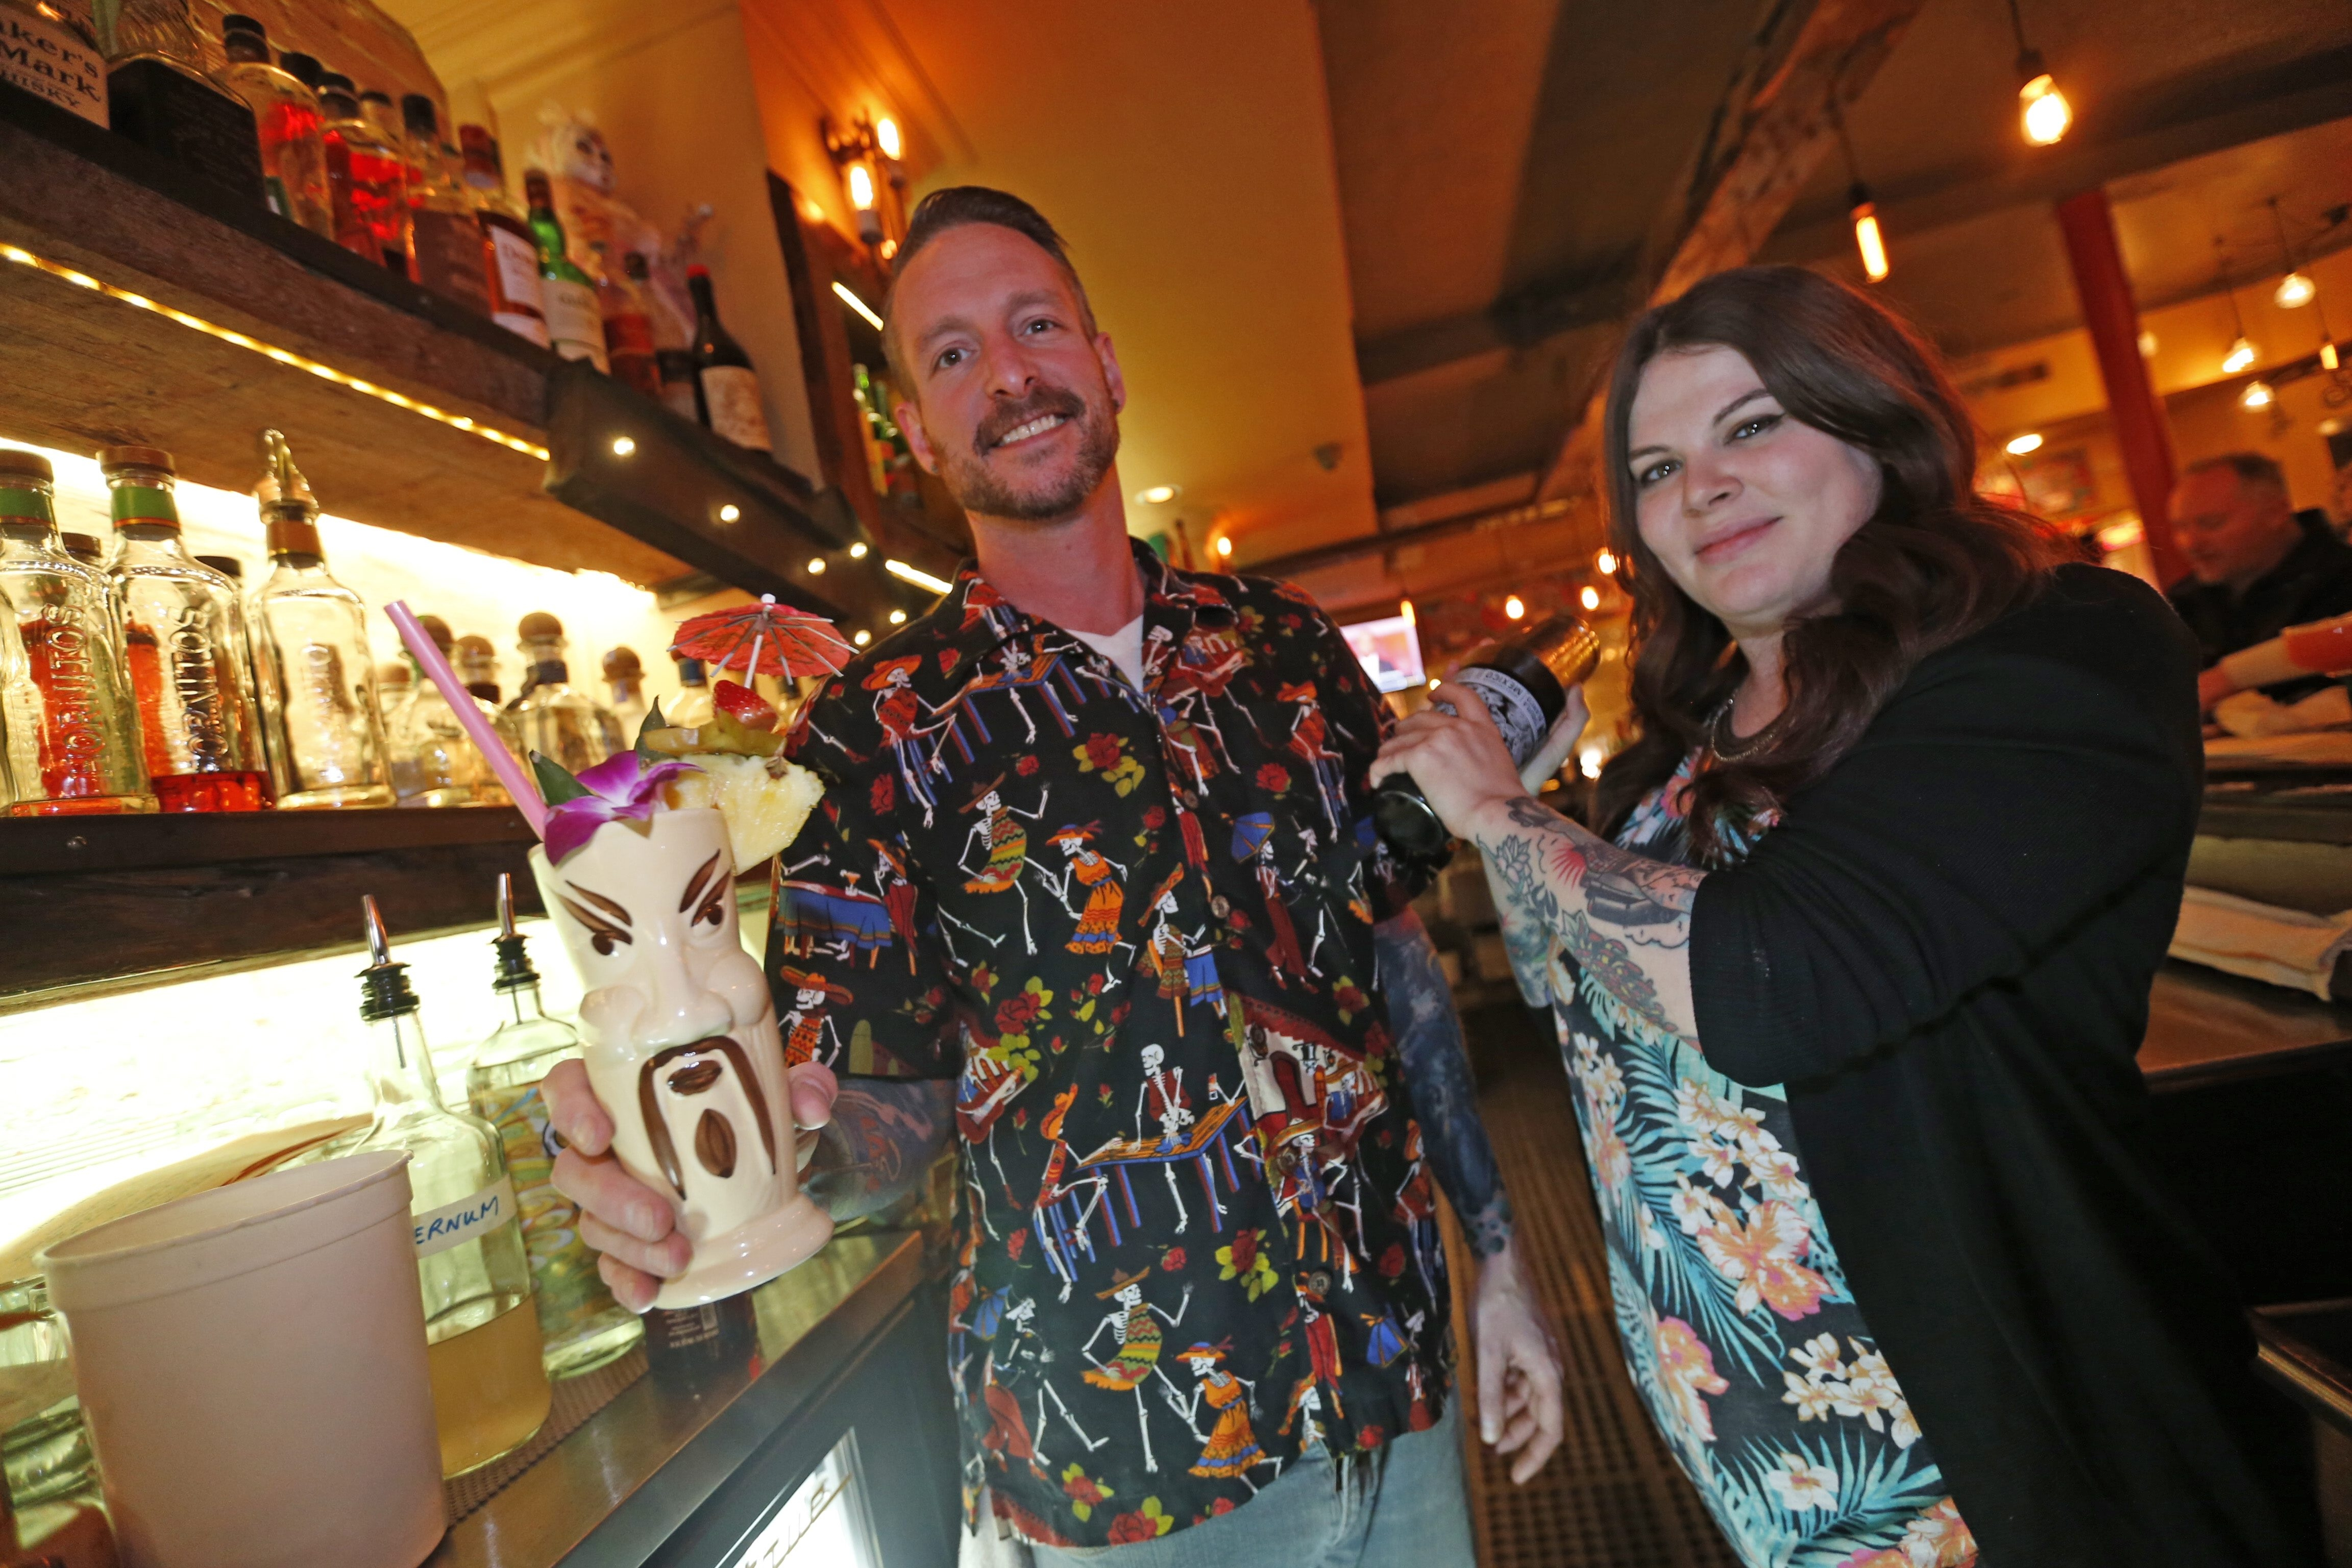 Manager Adam Smith and bartender Alison Clancy offer up some exotic drinks for CanTiki Tuesdays at Cantina Loco in Allentown. (Robert Kirkham/Buffalo News)